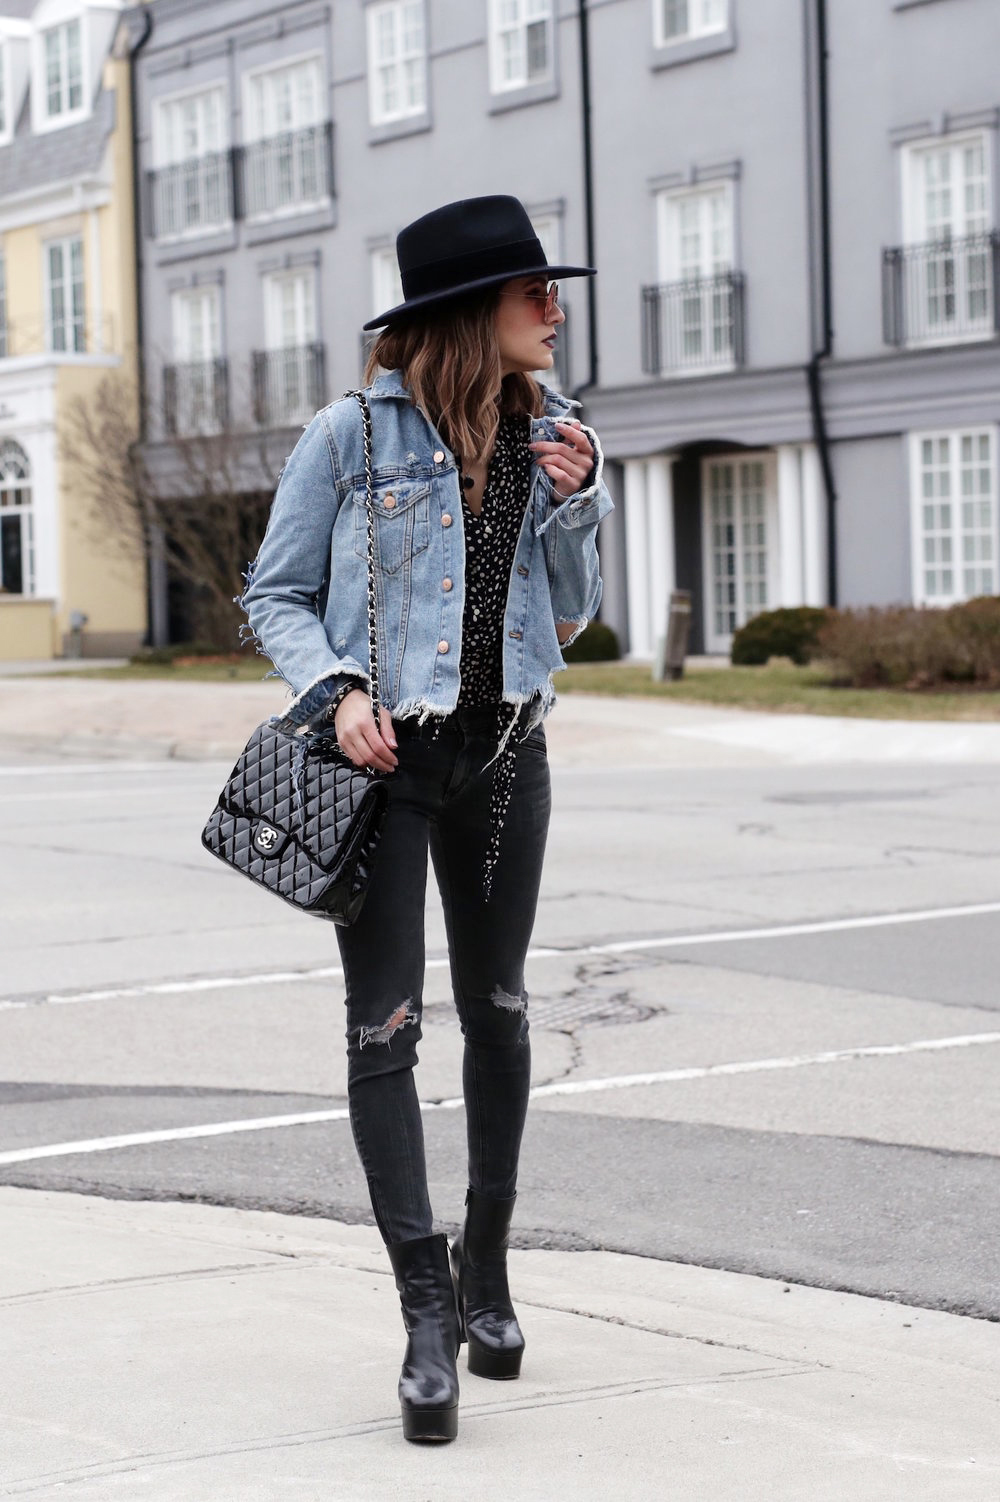 saint laurent platform boots - rag and bone jeans - ripped denim jacket - street style - woahstyle.com - nathalie martin-9.jpg